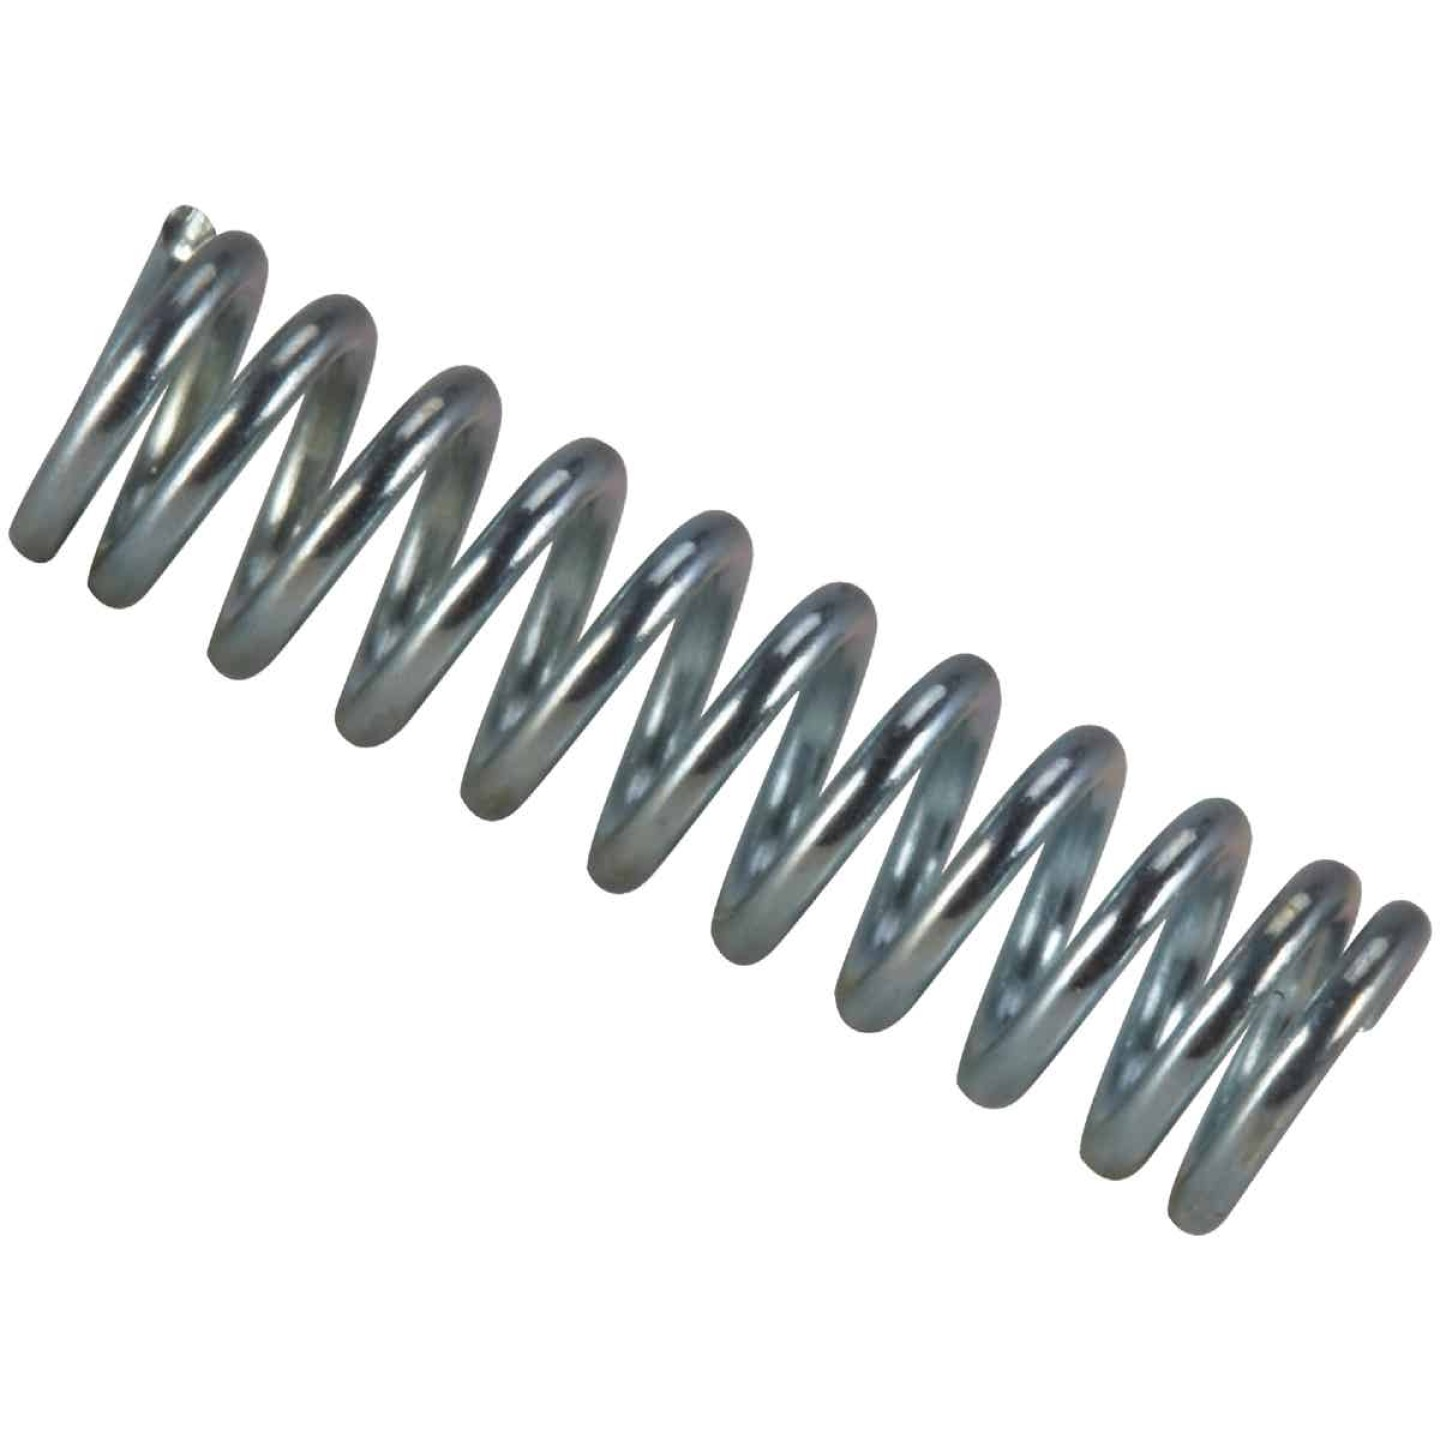 Century Spring 1-1/2 In. x 3/8 In. Compression Spring (4 Count) Image 1